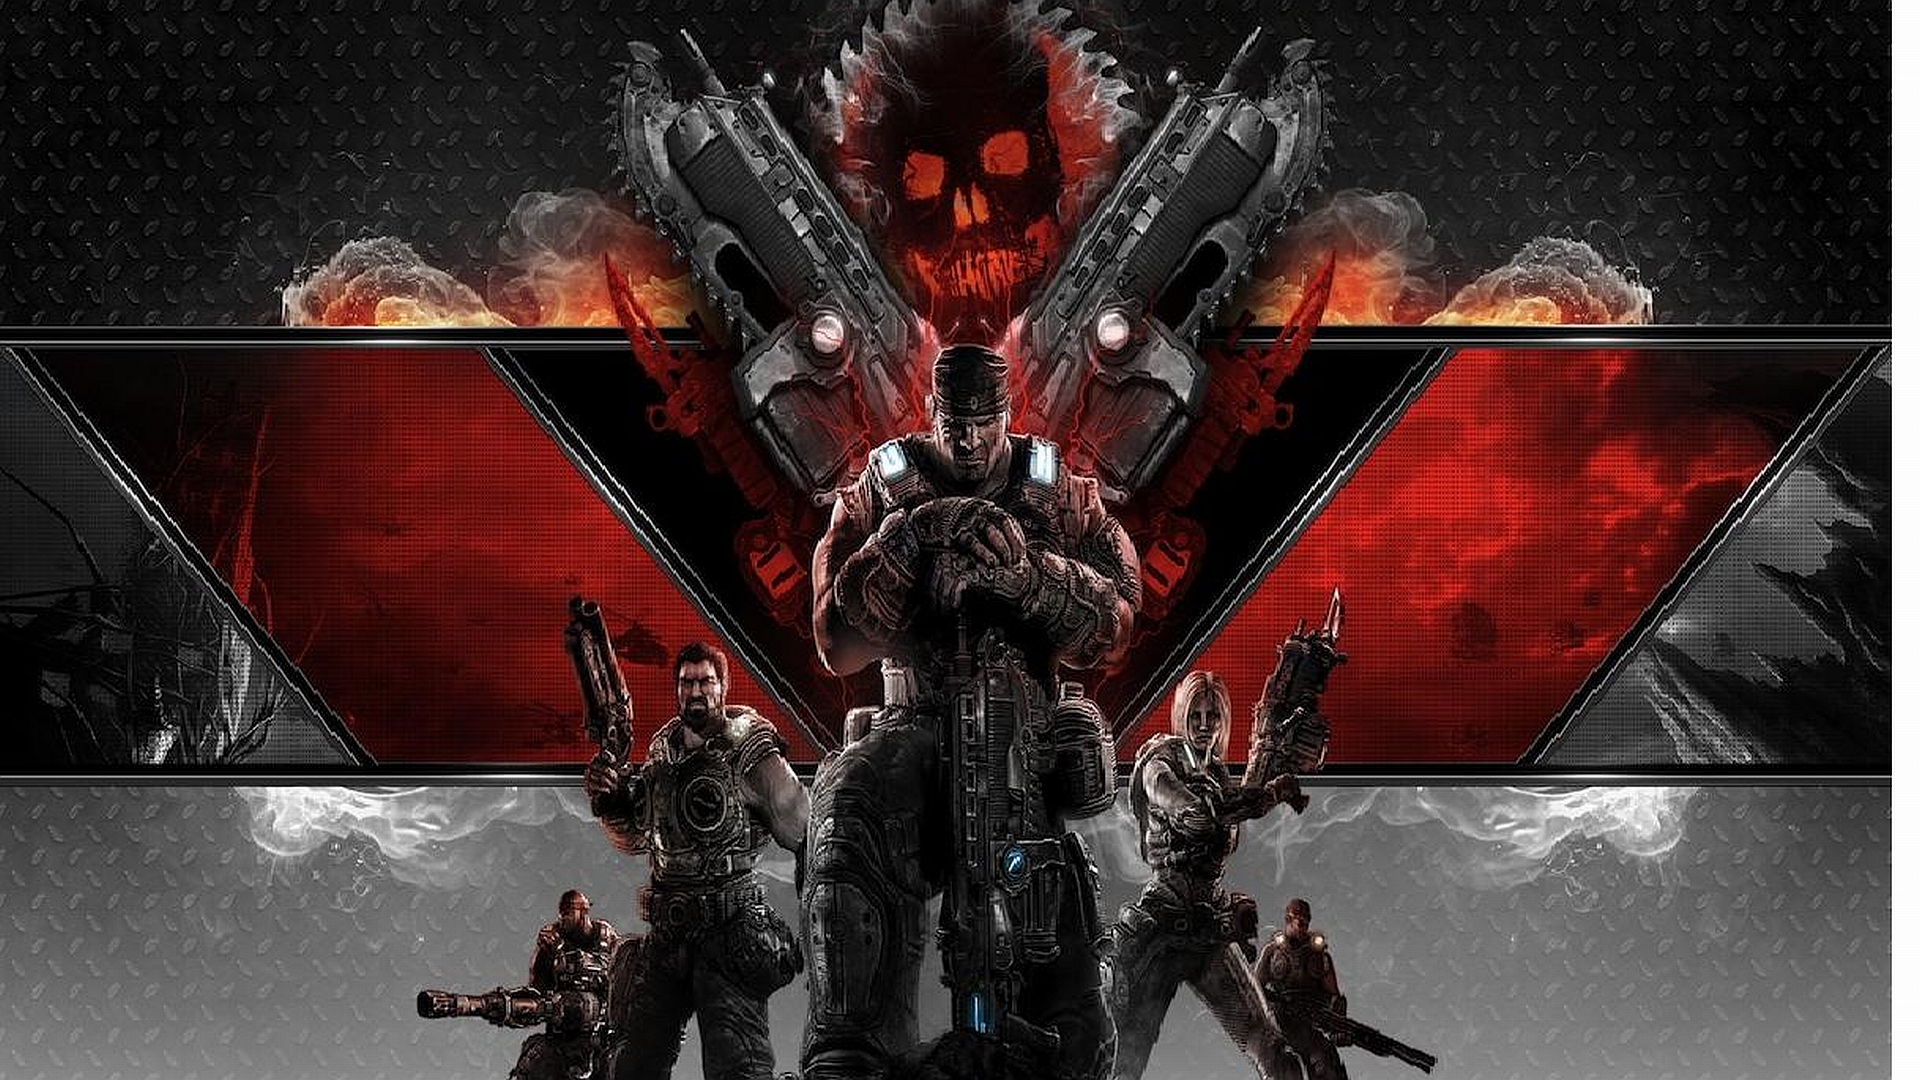 Gears Of War 3 Wallpapers: Gears Of War 3 HD Wallpaper